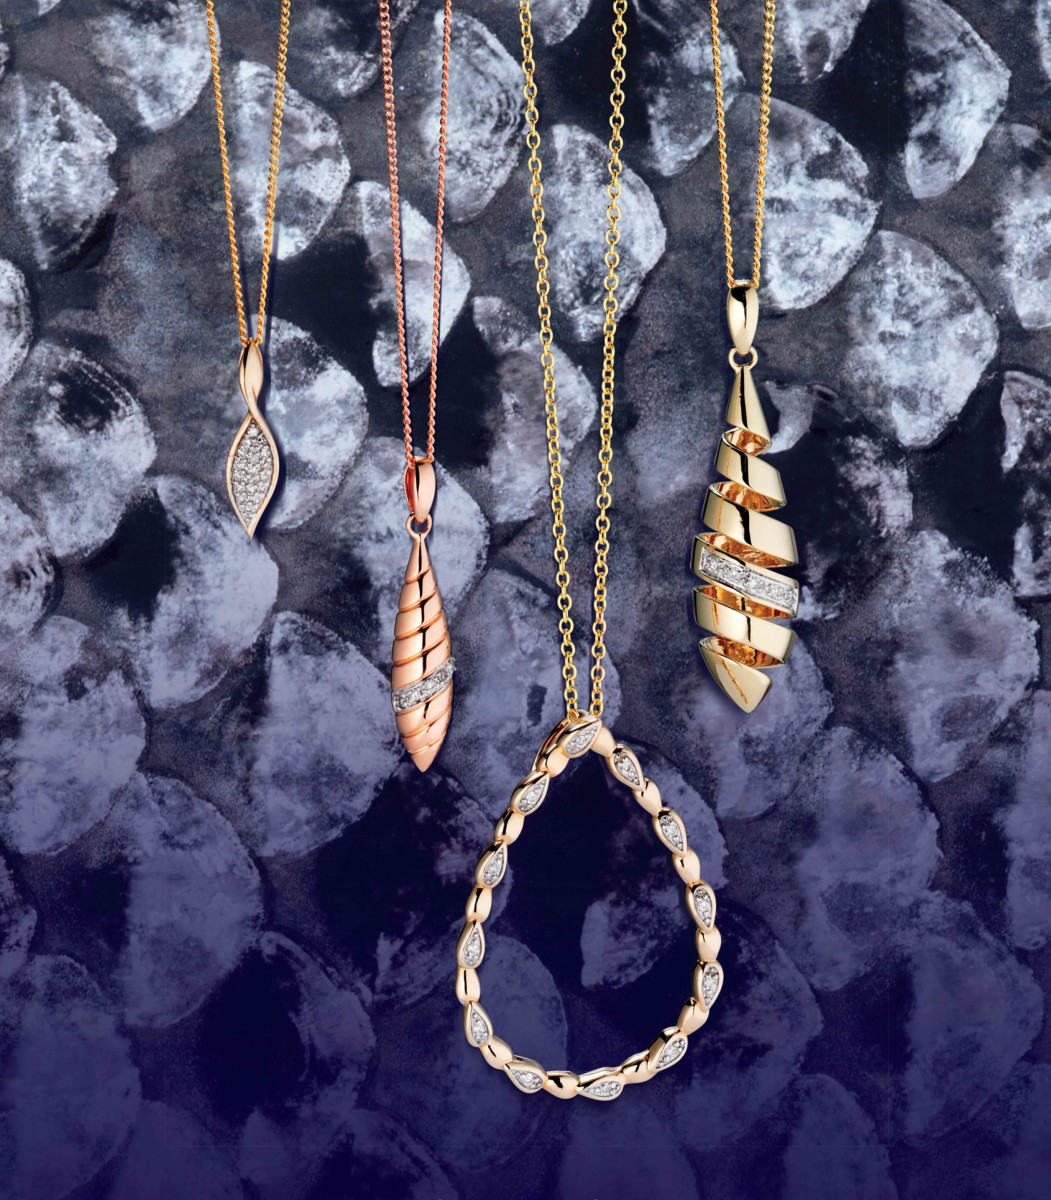 Elements Gold 2016 collection